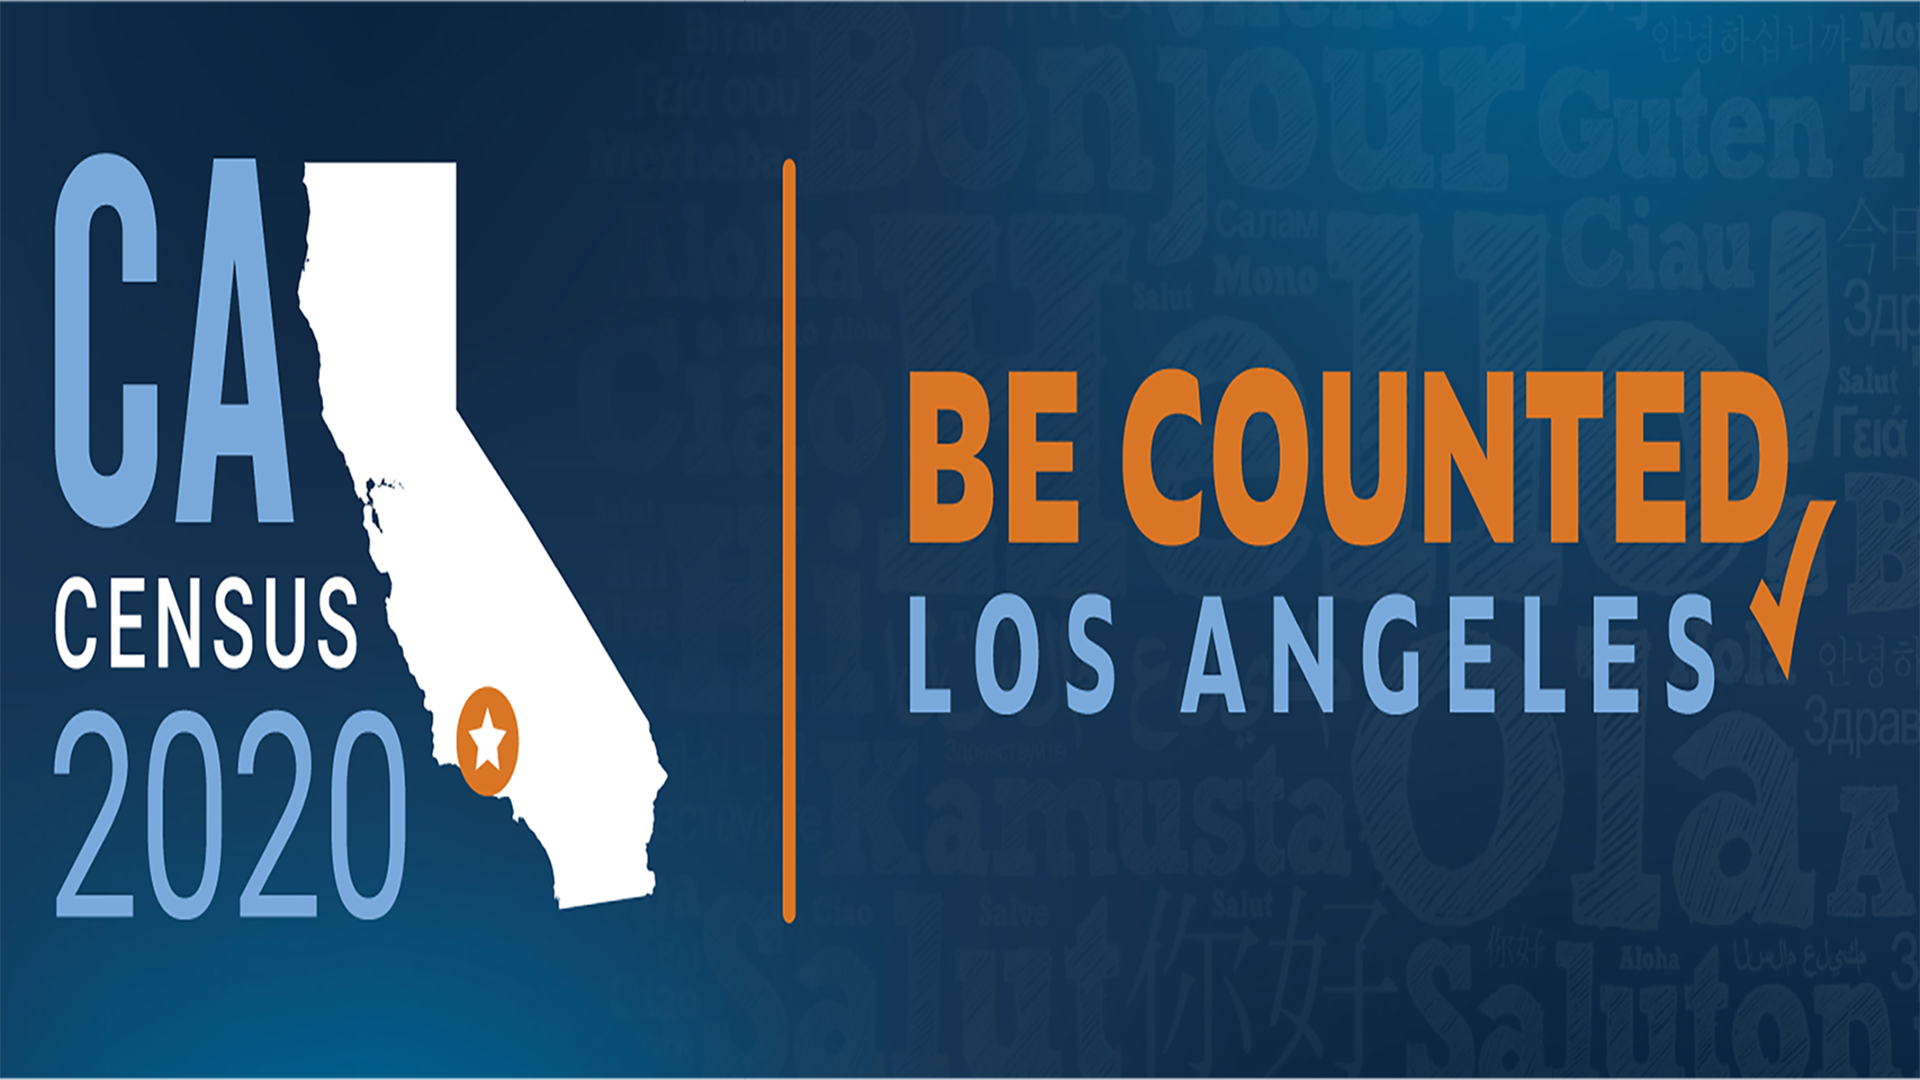 Banner of California Map Logo with text Census 2020 Be Counted Los Angeles.